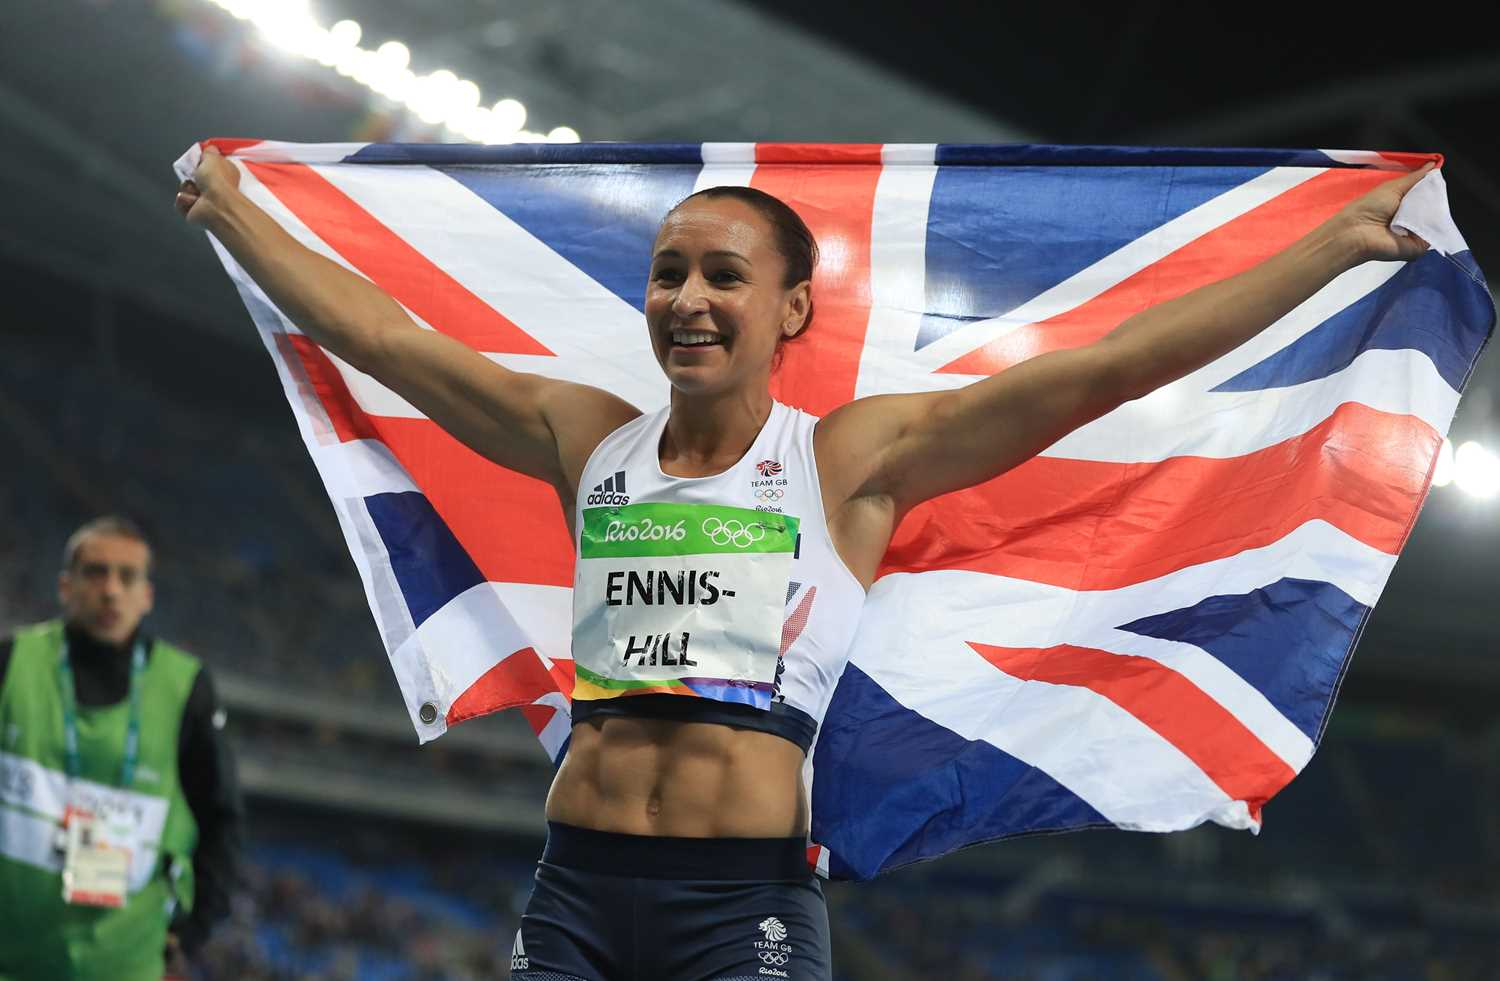 Signed Dame Jessica Ennis-Hill 2016 Team GB Rio Olympics Games Vest Olympic and triple world - Image 3 of 3